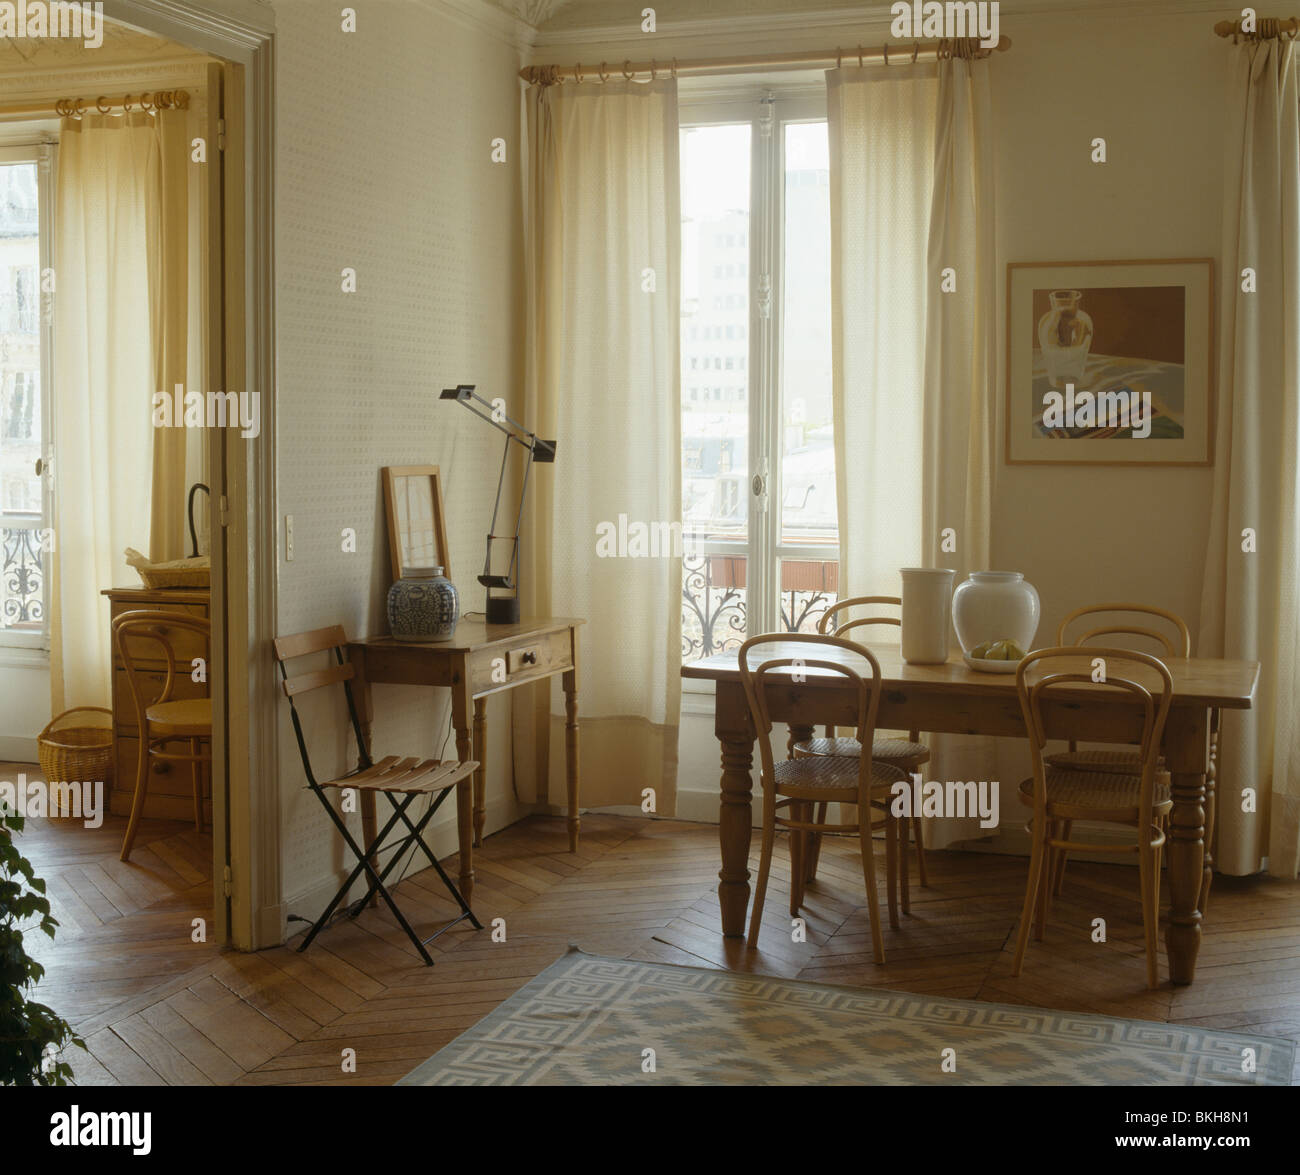 Antique Bentwood chairs and old pine table in cream apartment dining room  with cream curtains at French windowsAntique Bentwood chairs and old pine table in cream apartment  . Antique Pine Dining Room Chairs. Home Design Ideas